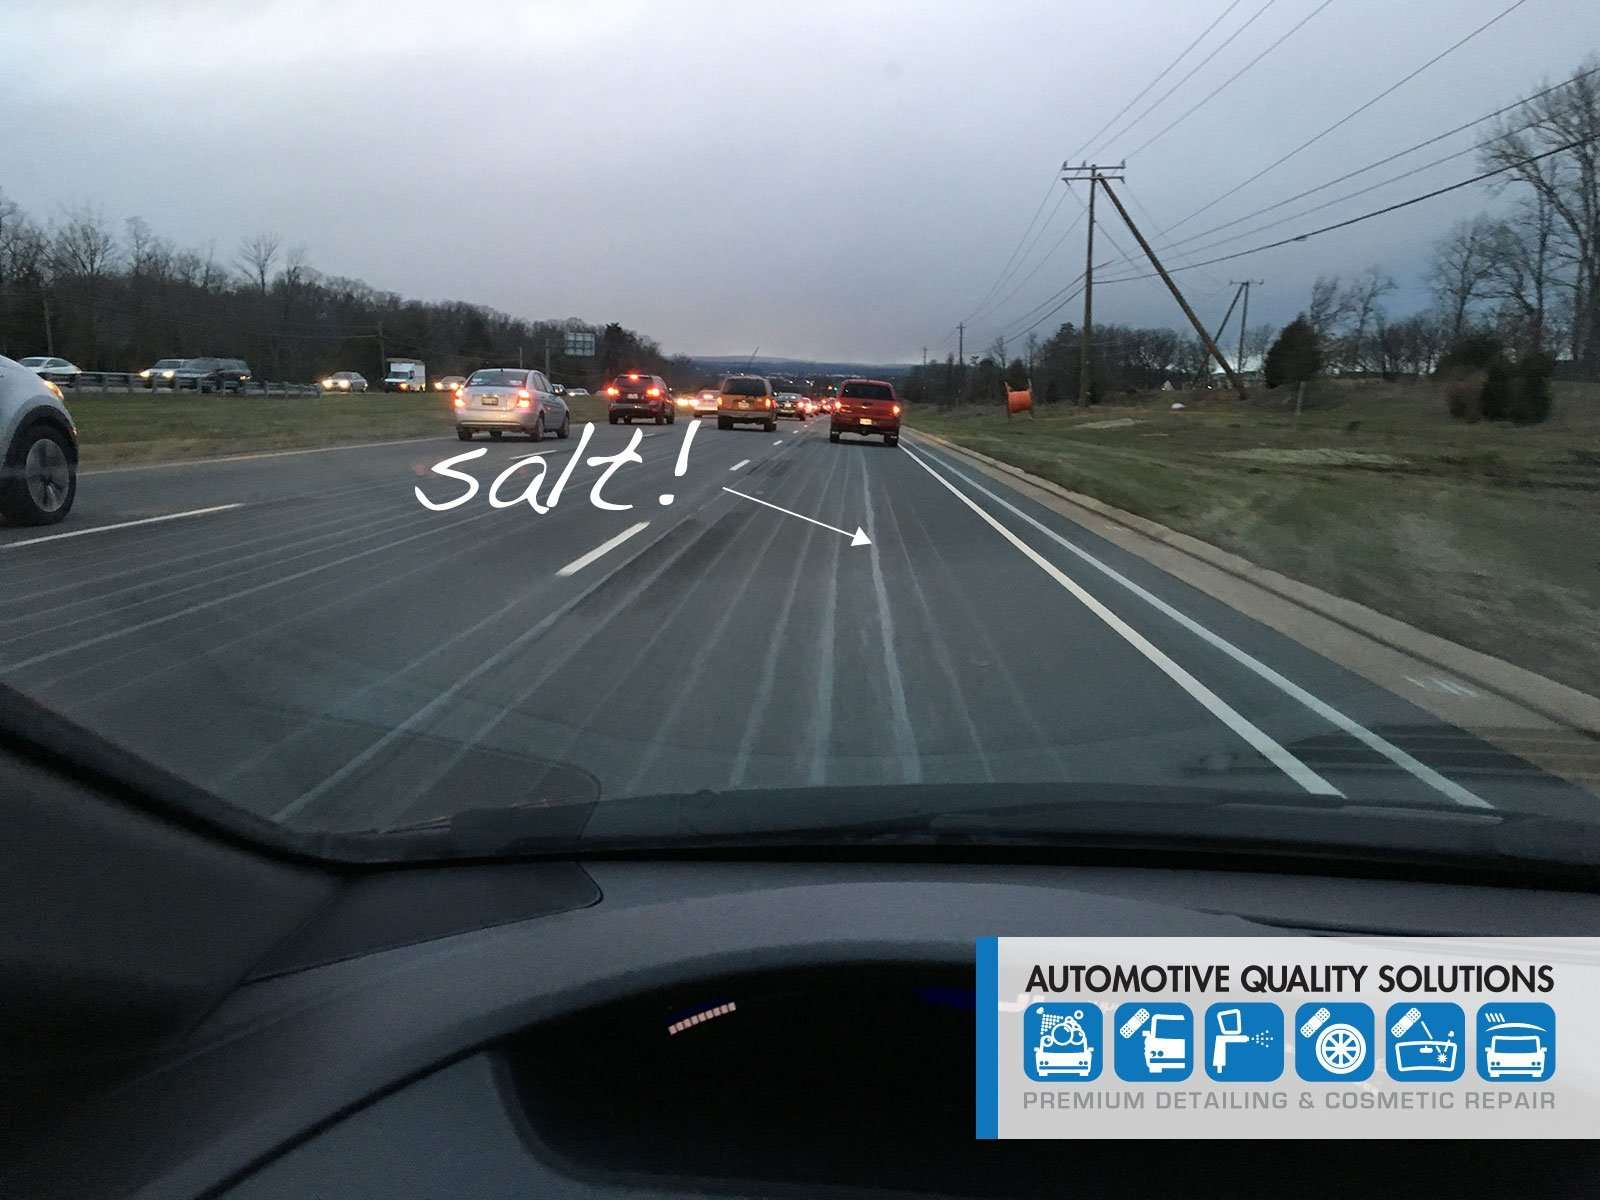 Road chemicals used to pretreat for winter weather are damaging to automobile finishes.